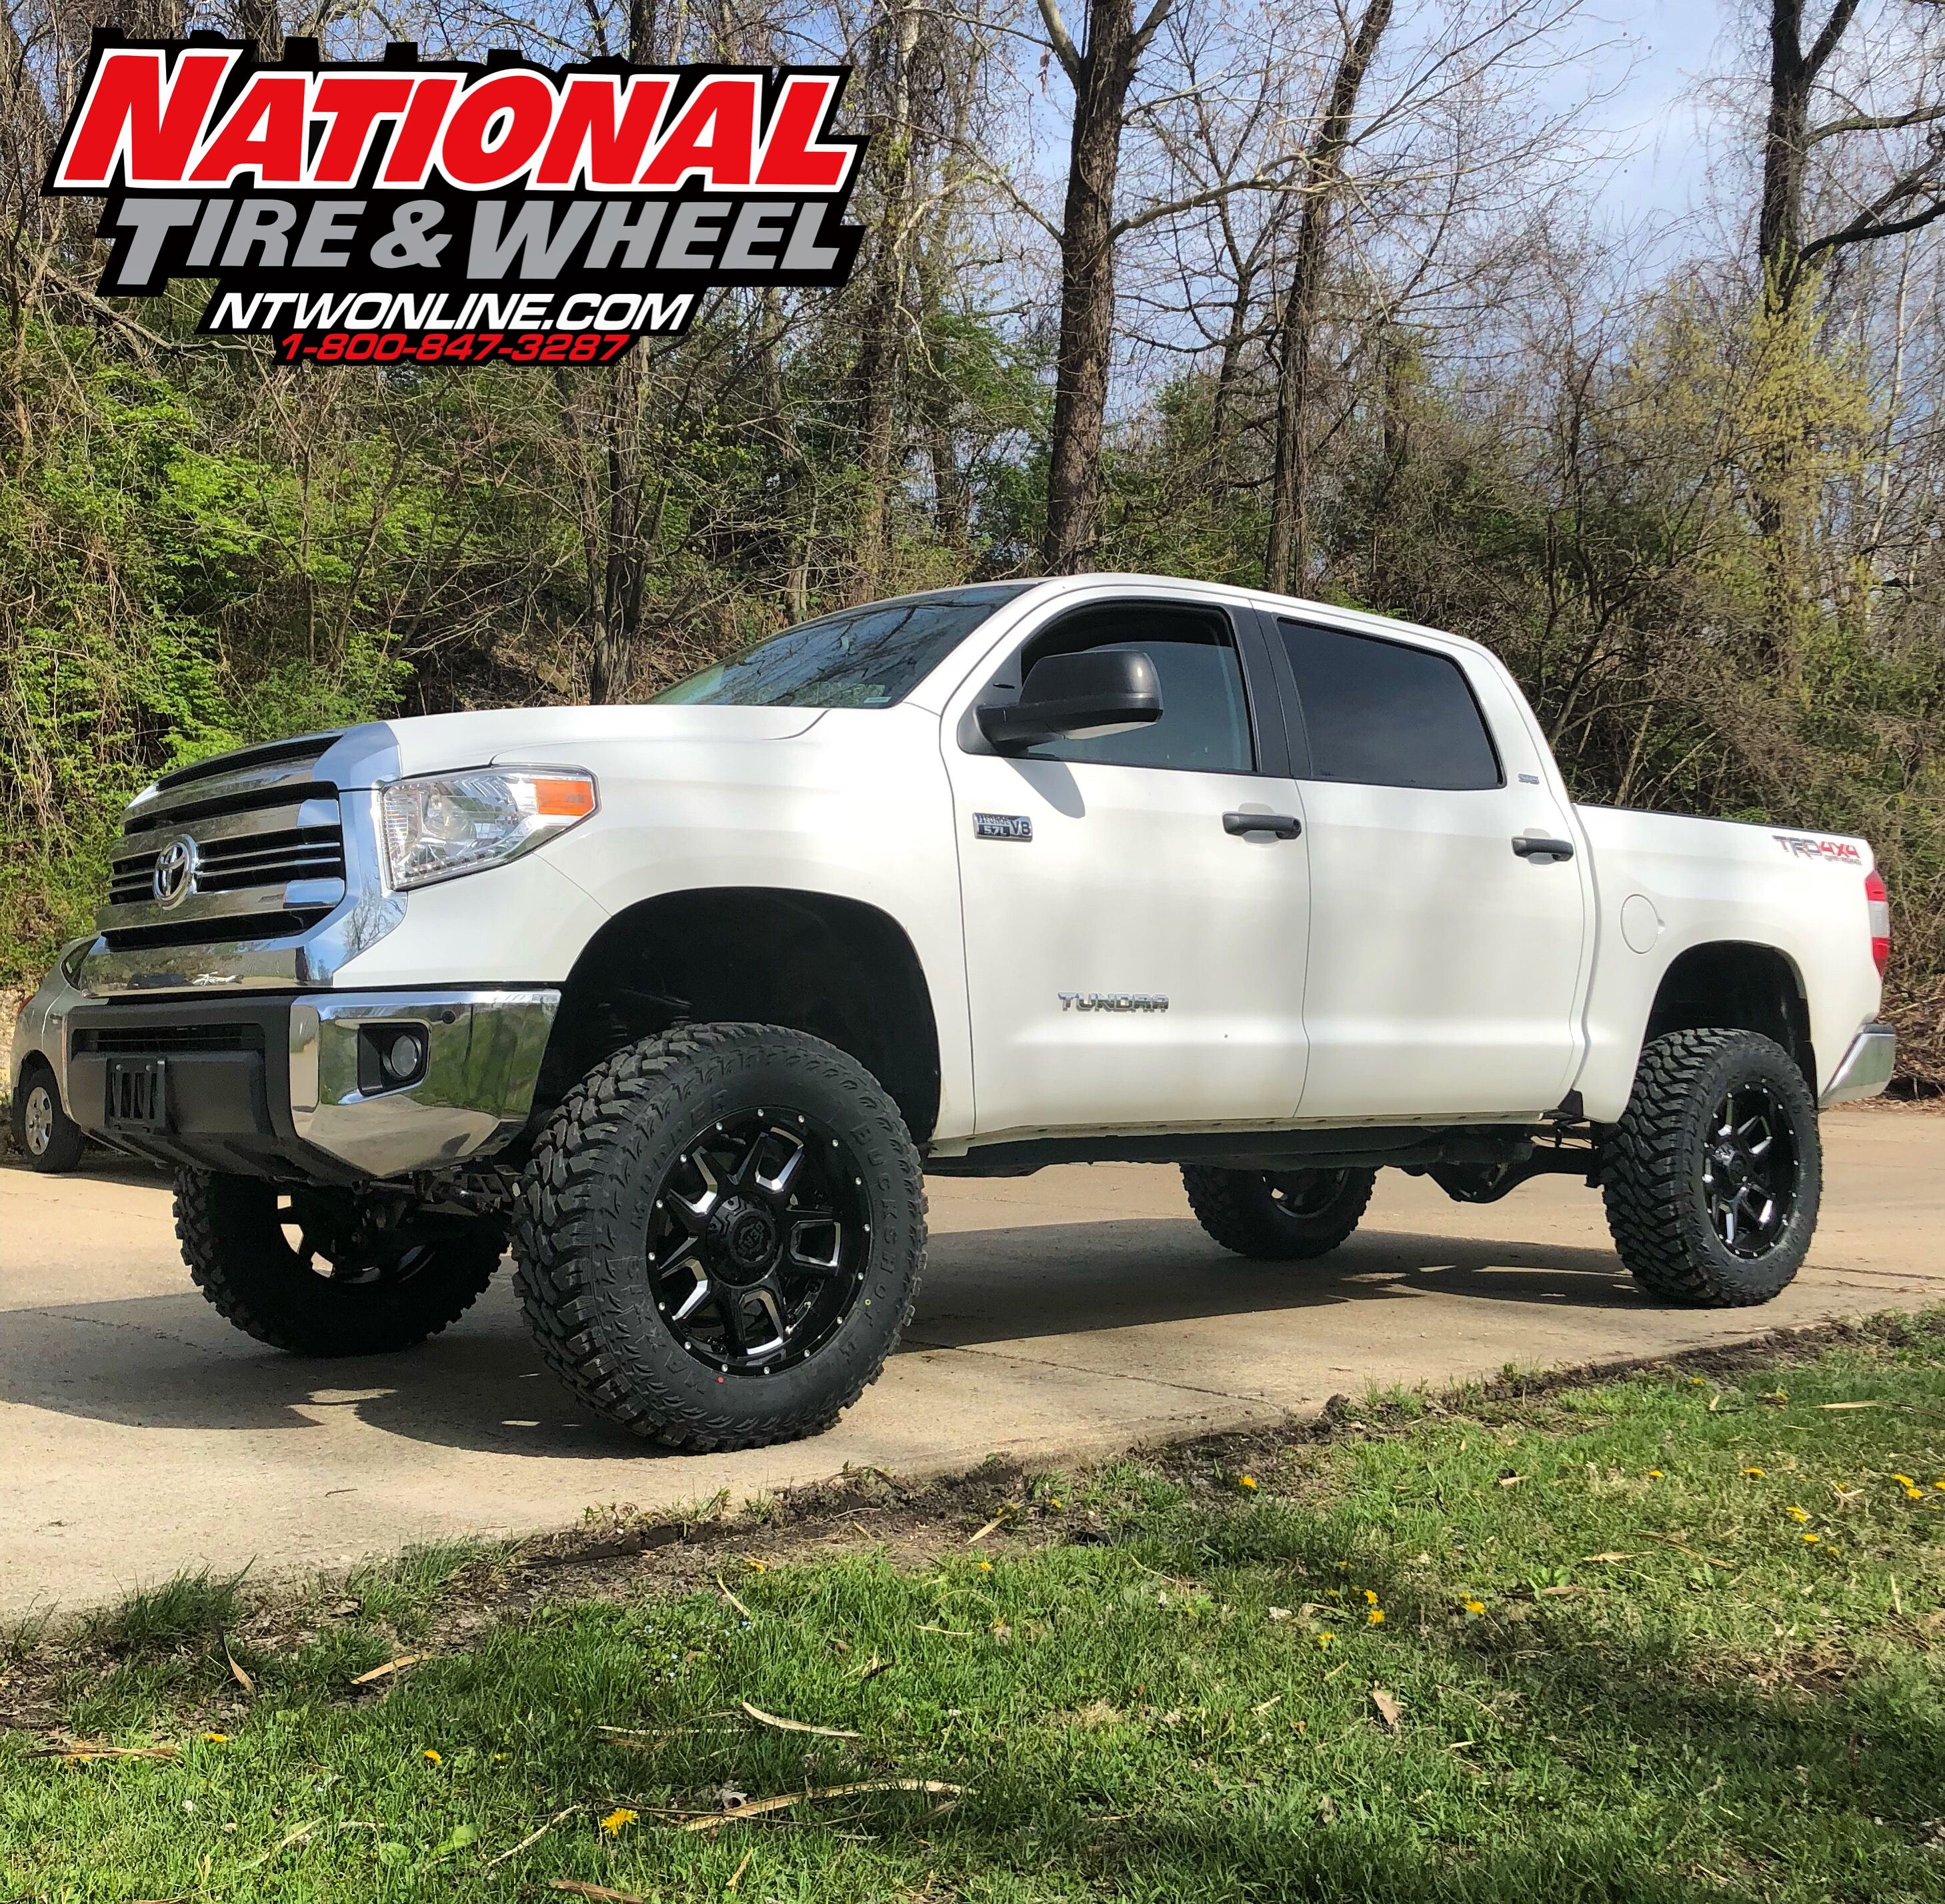 Ntw Install This Toyota Tundra Received A 6in Rough Country Lift Installation Suspension System 20x9 Gear Alloy Armor Wheels And Set Of 35x1250r20 Maxxis Buckshot